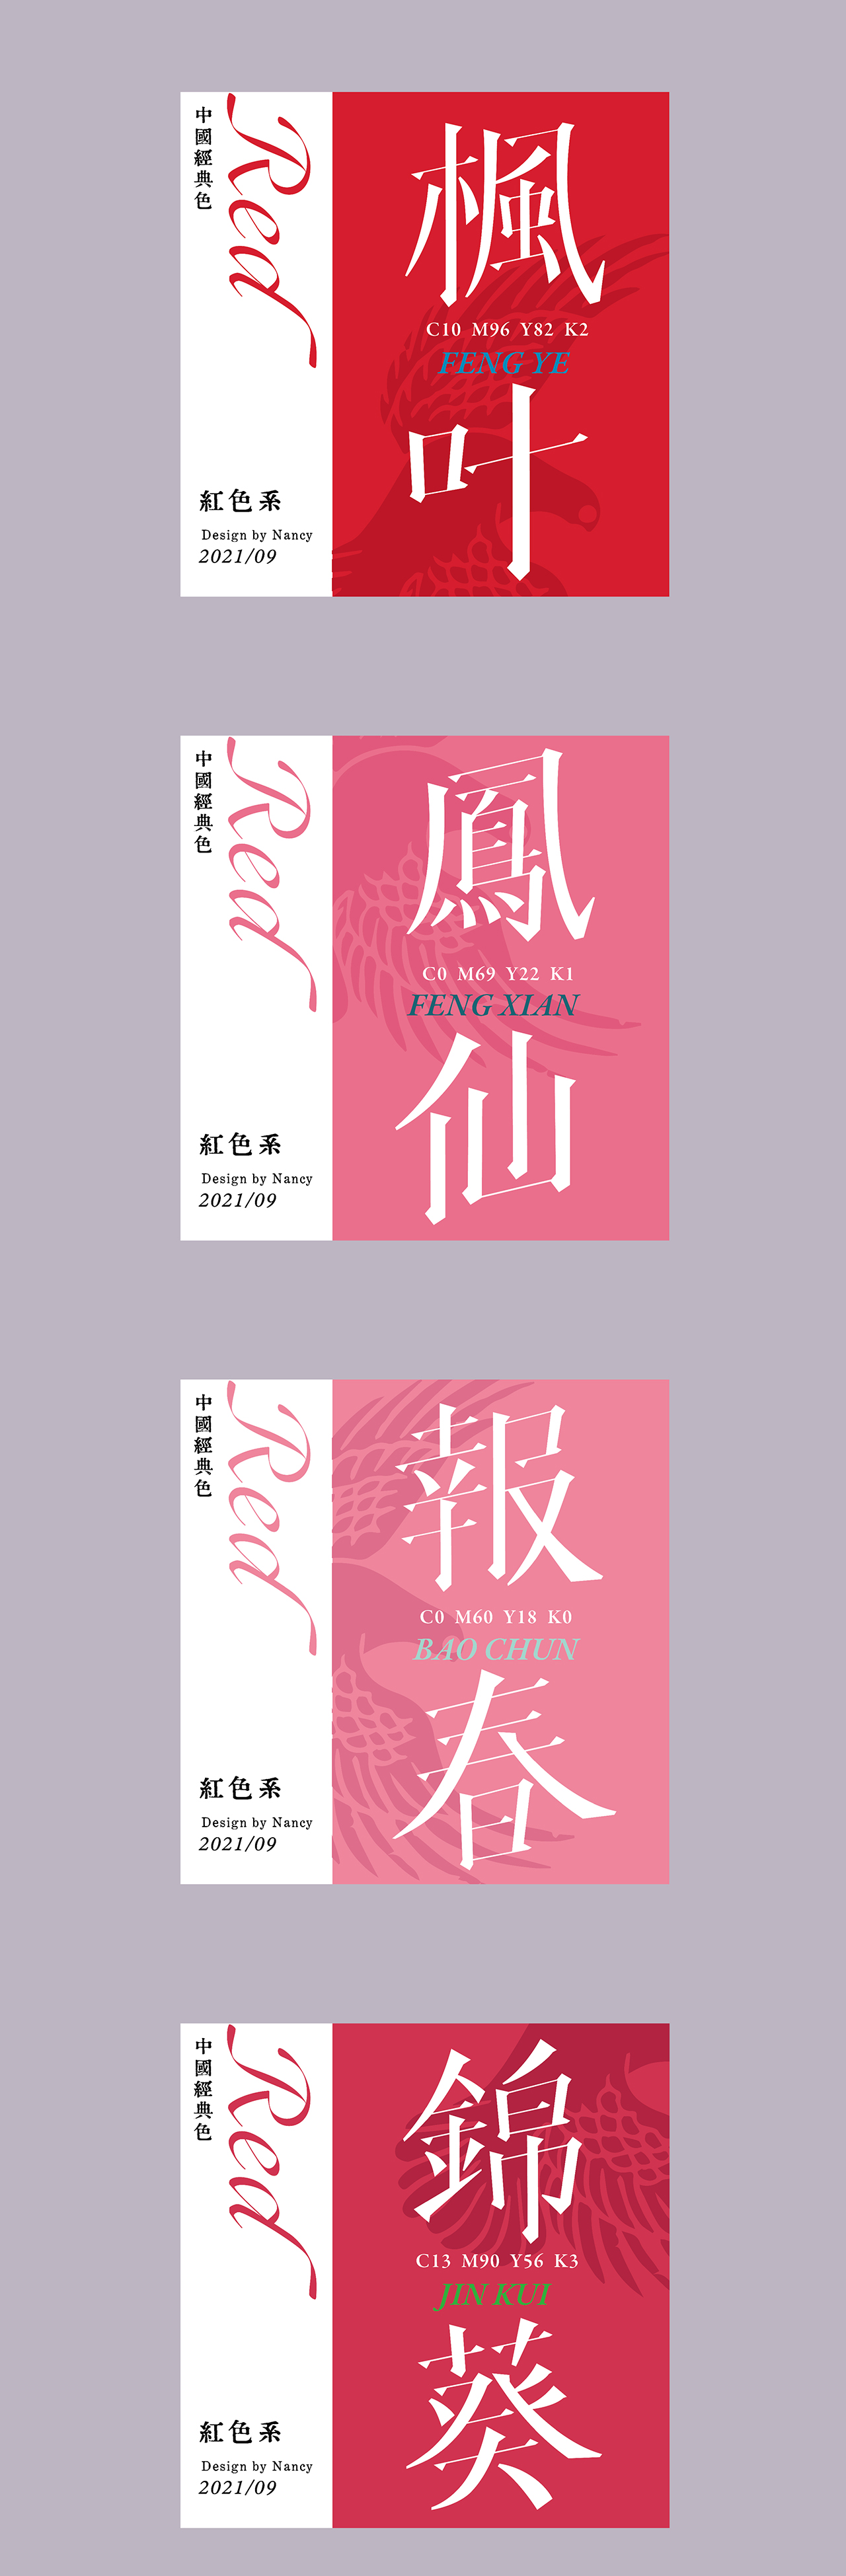 4P Collection of the latest Chinese font design schemes in 2021 #.593